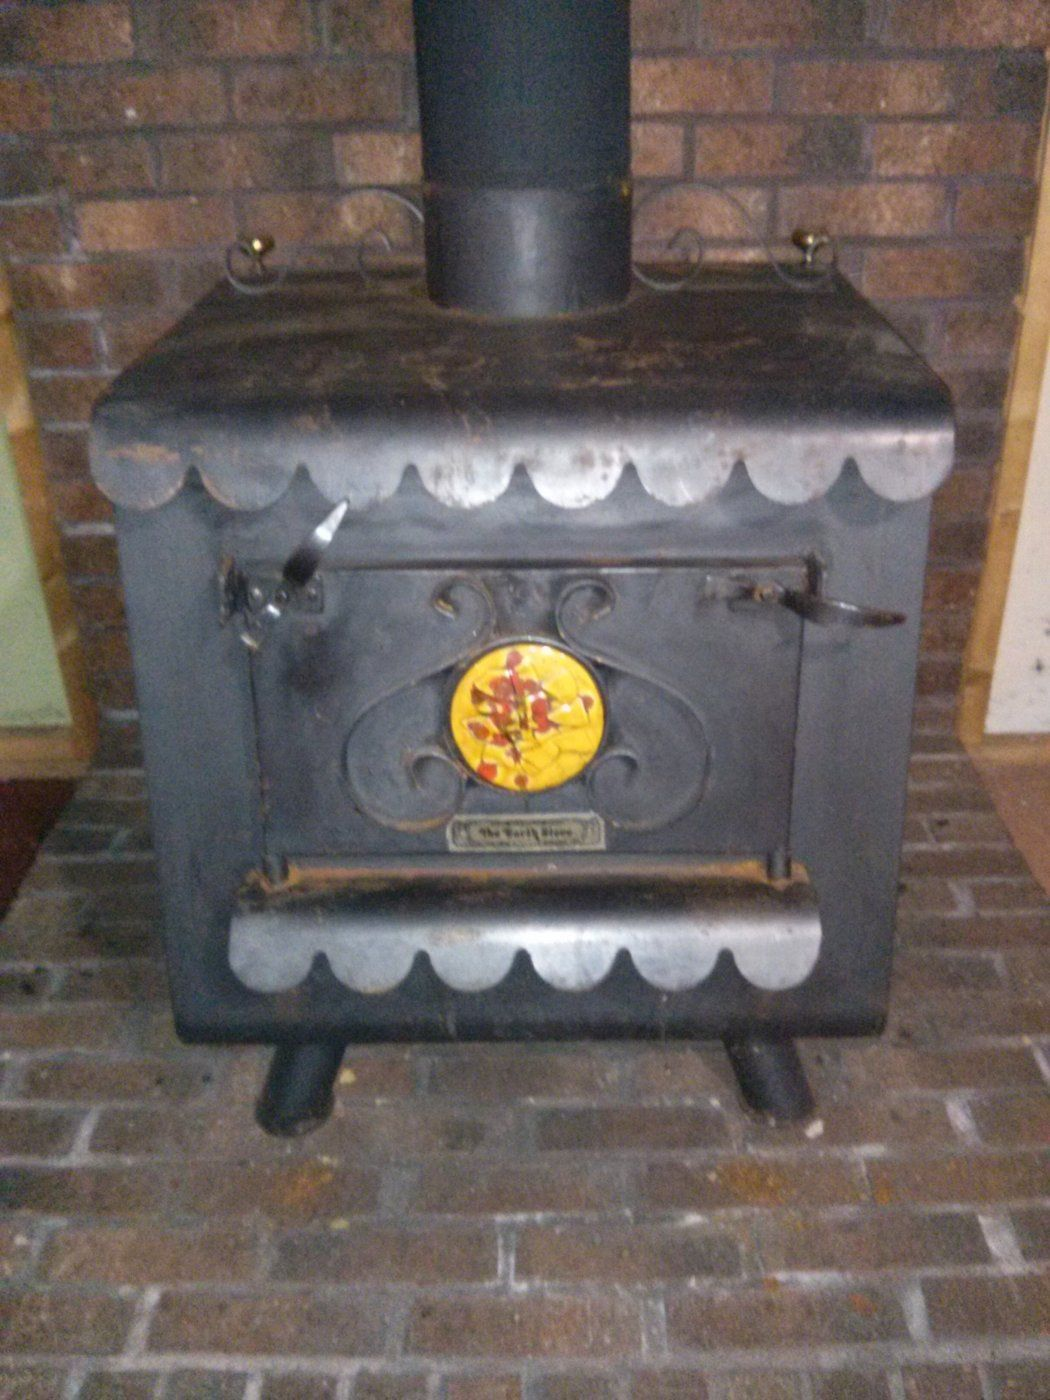 I M Not Of The Year Id This Stove Maker Hearth Com